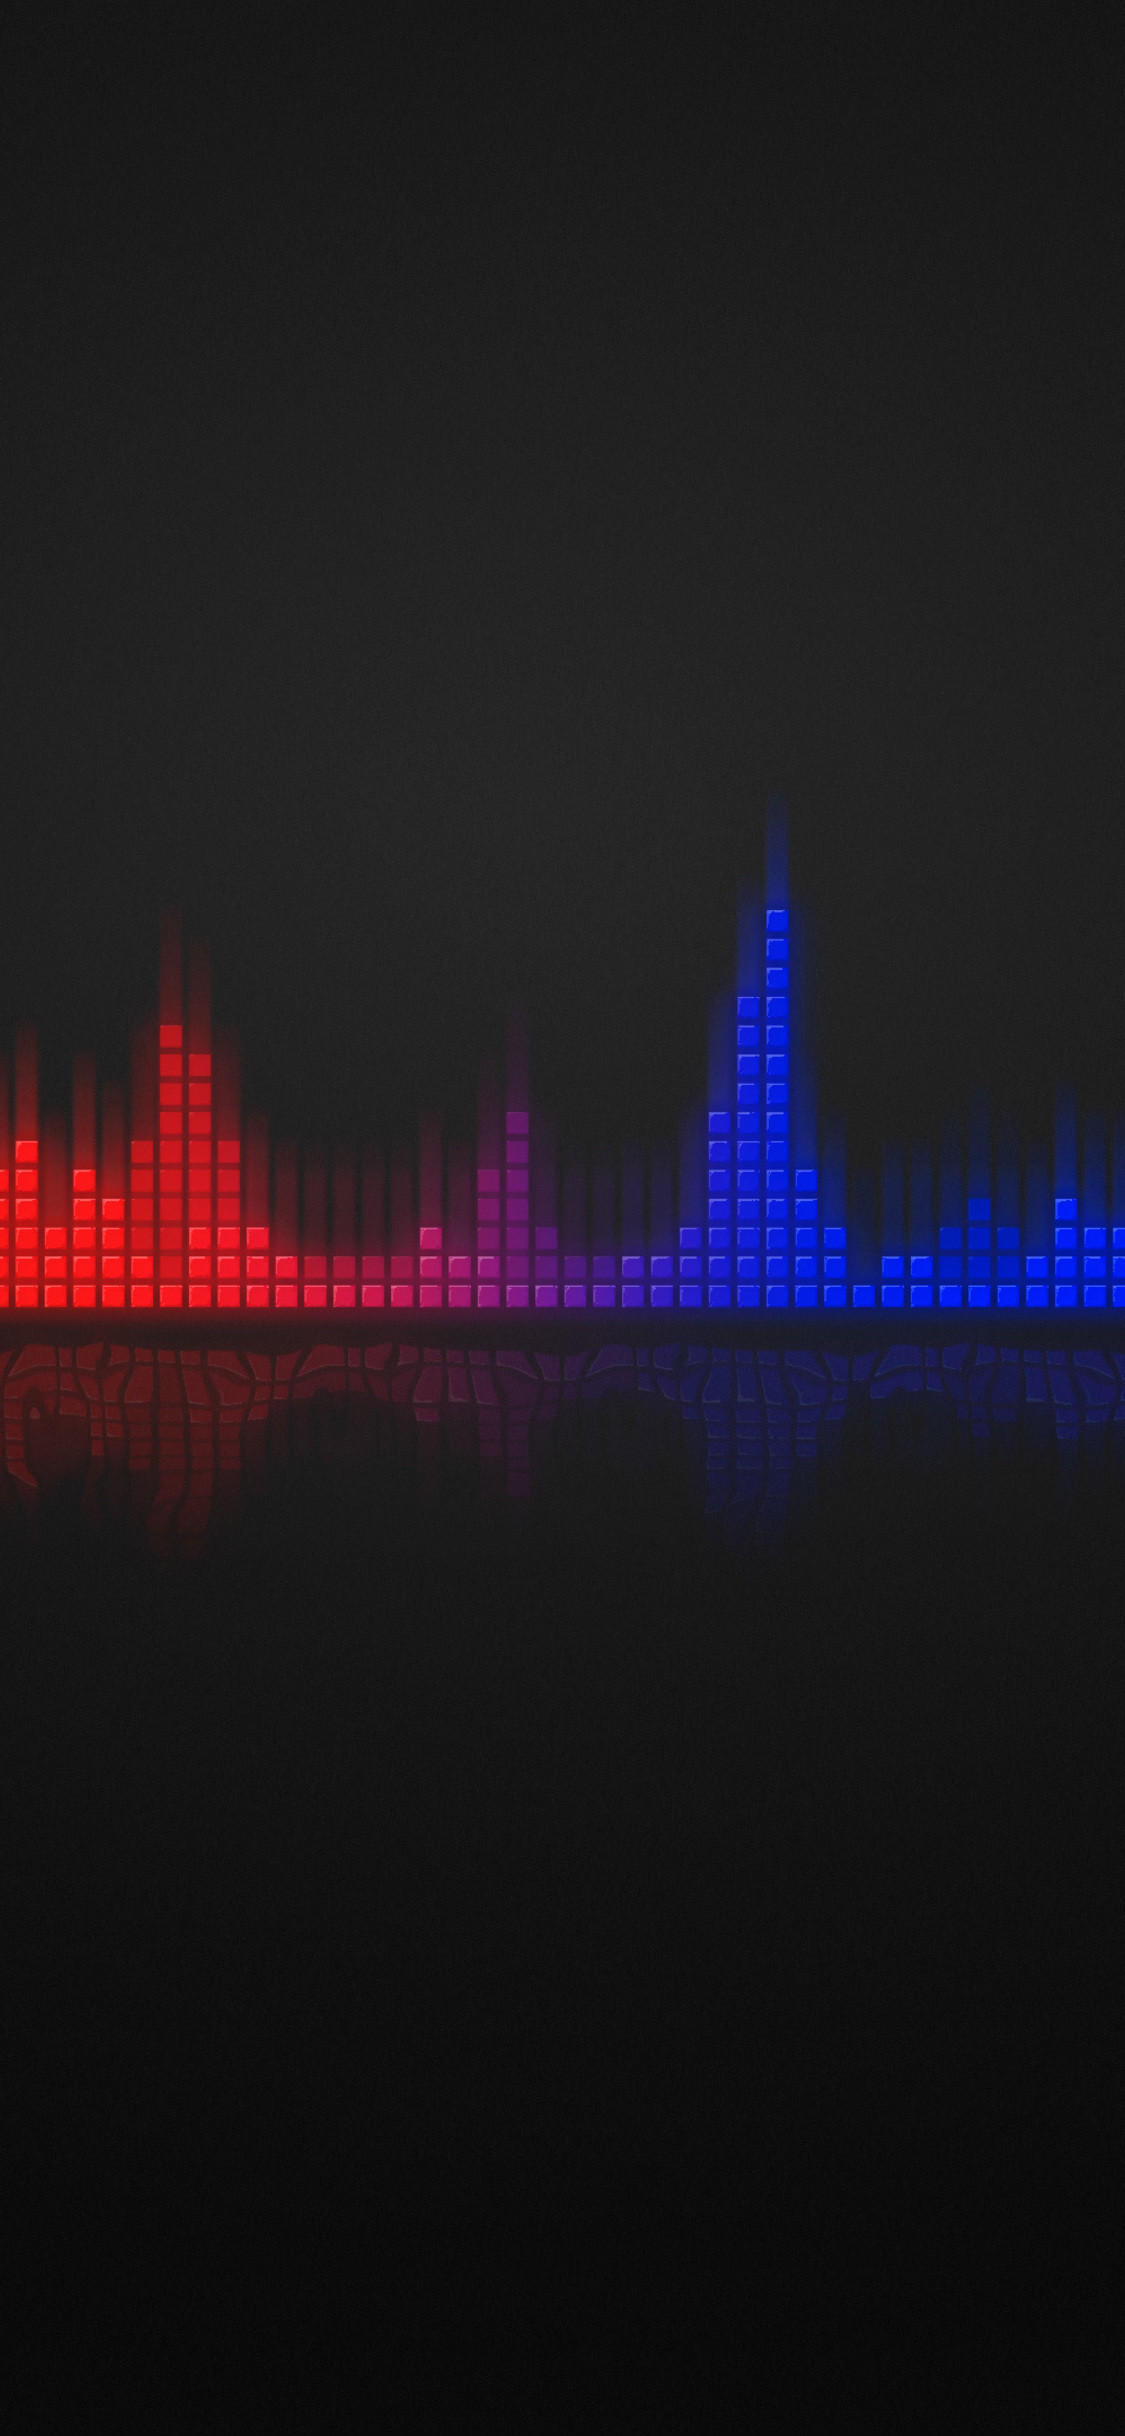 Download Music Live Wallpaper For Android Equalizer